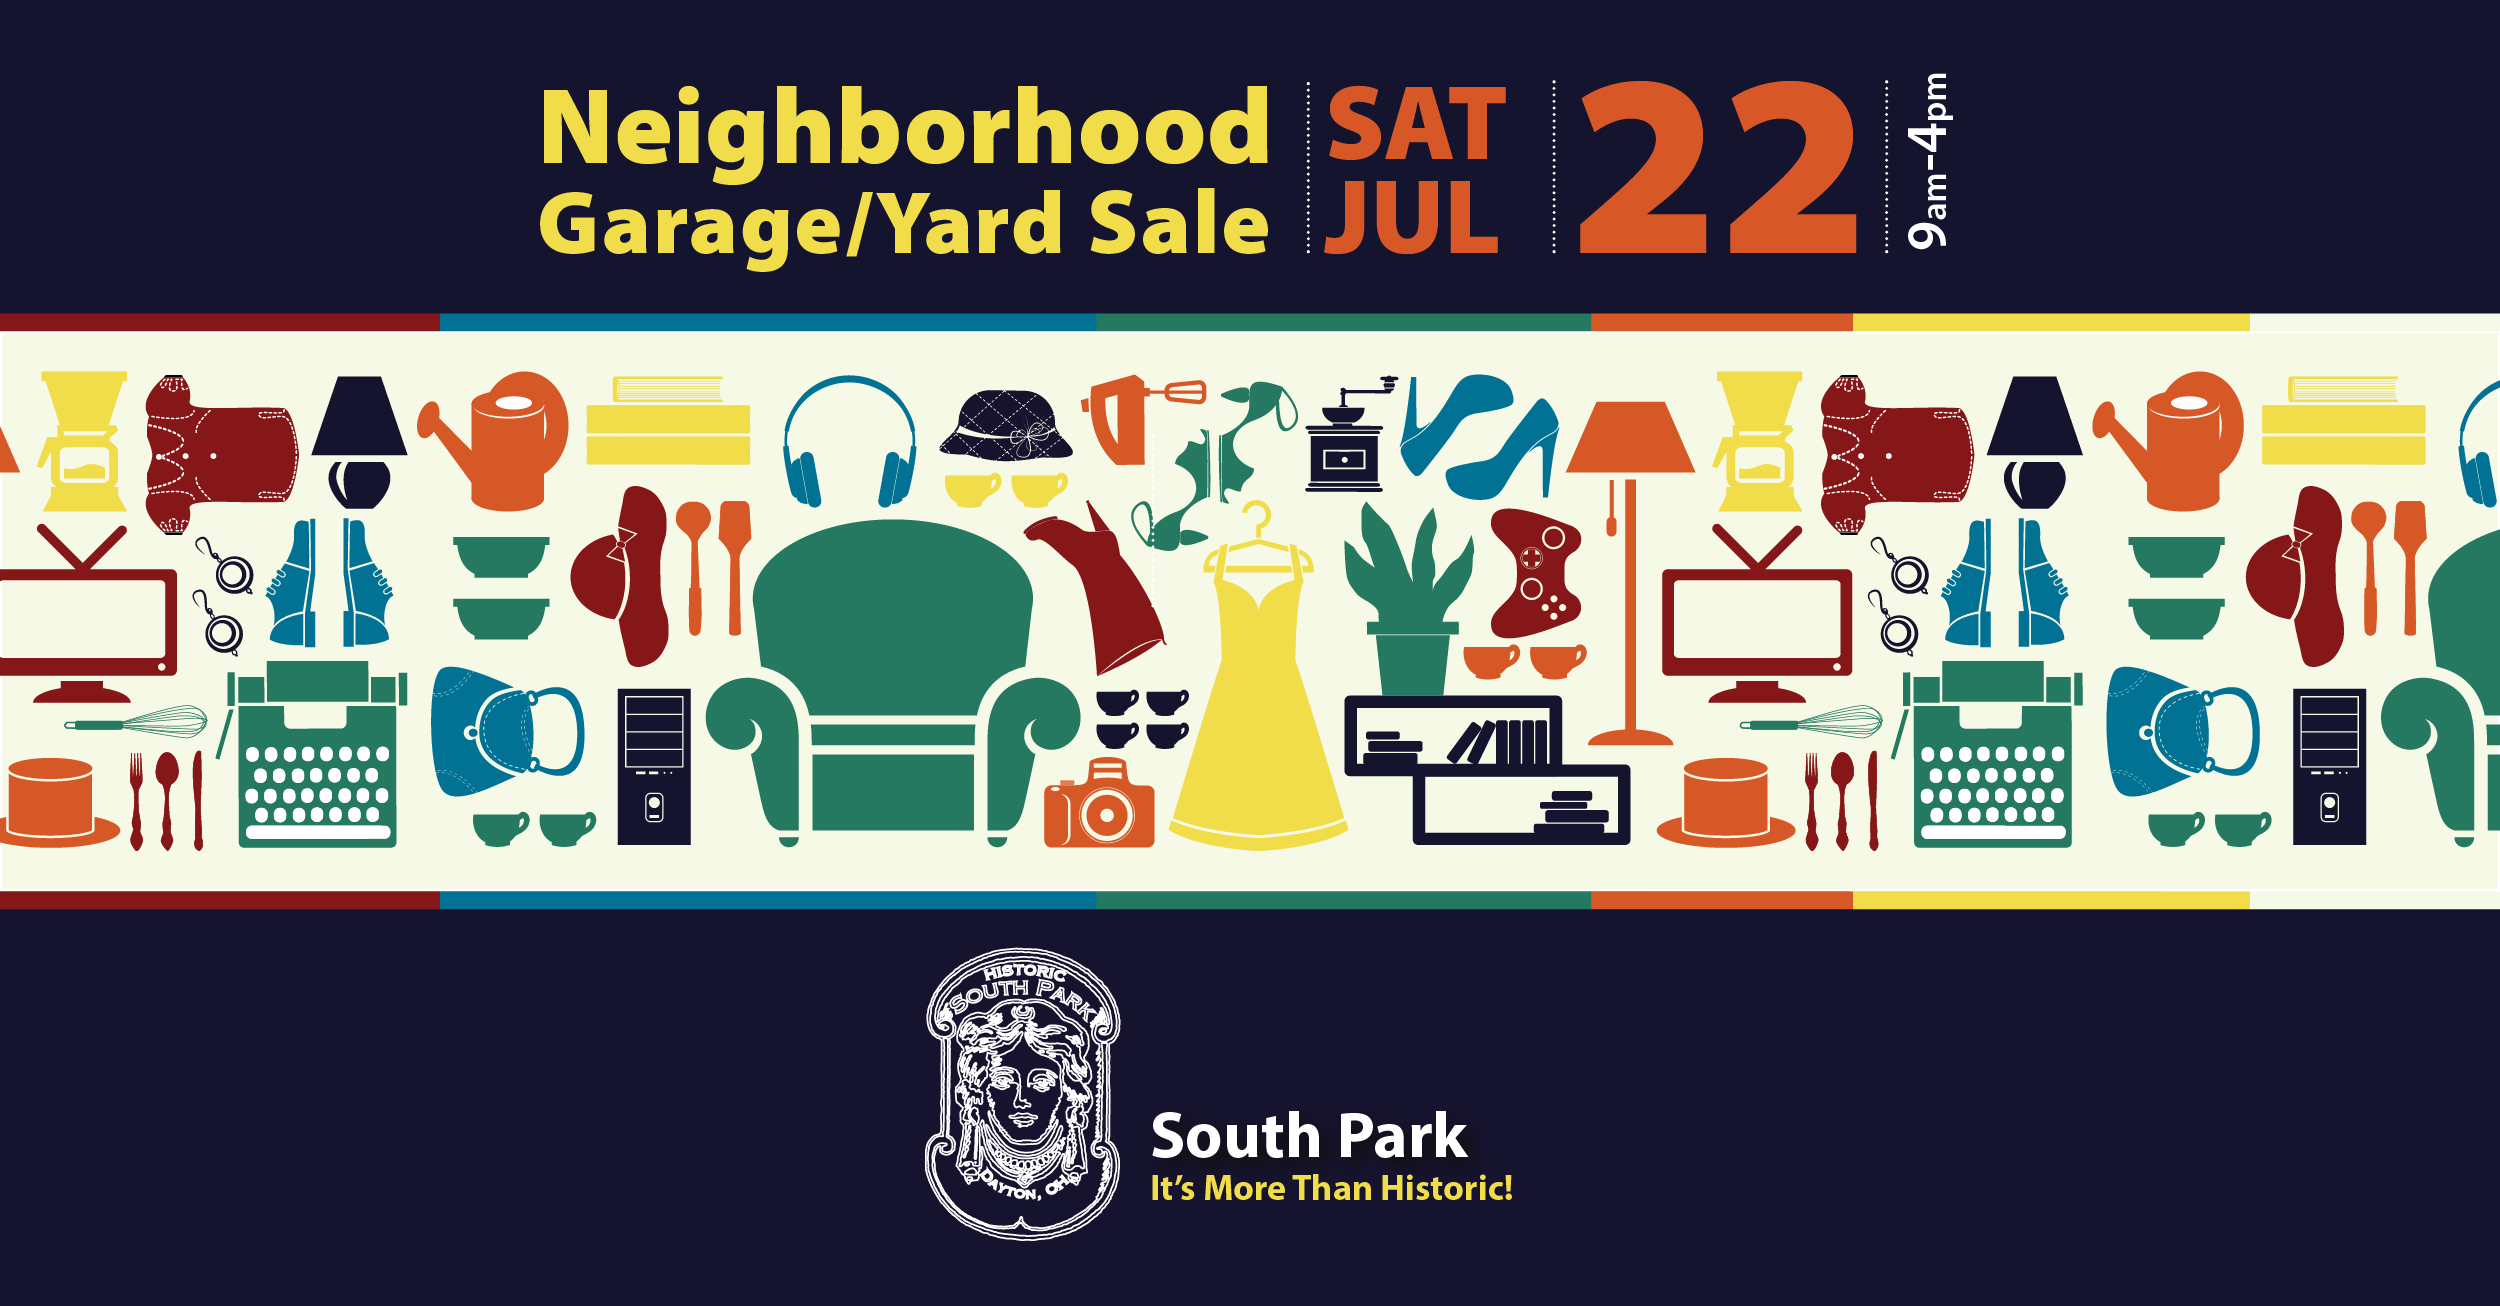 Neighborhood-Wide Garage/Yard Sale July 22 – Map Now Available